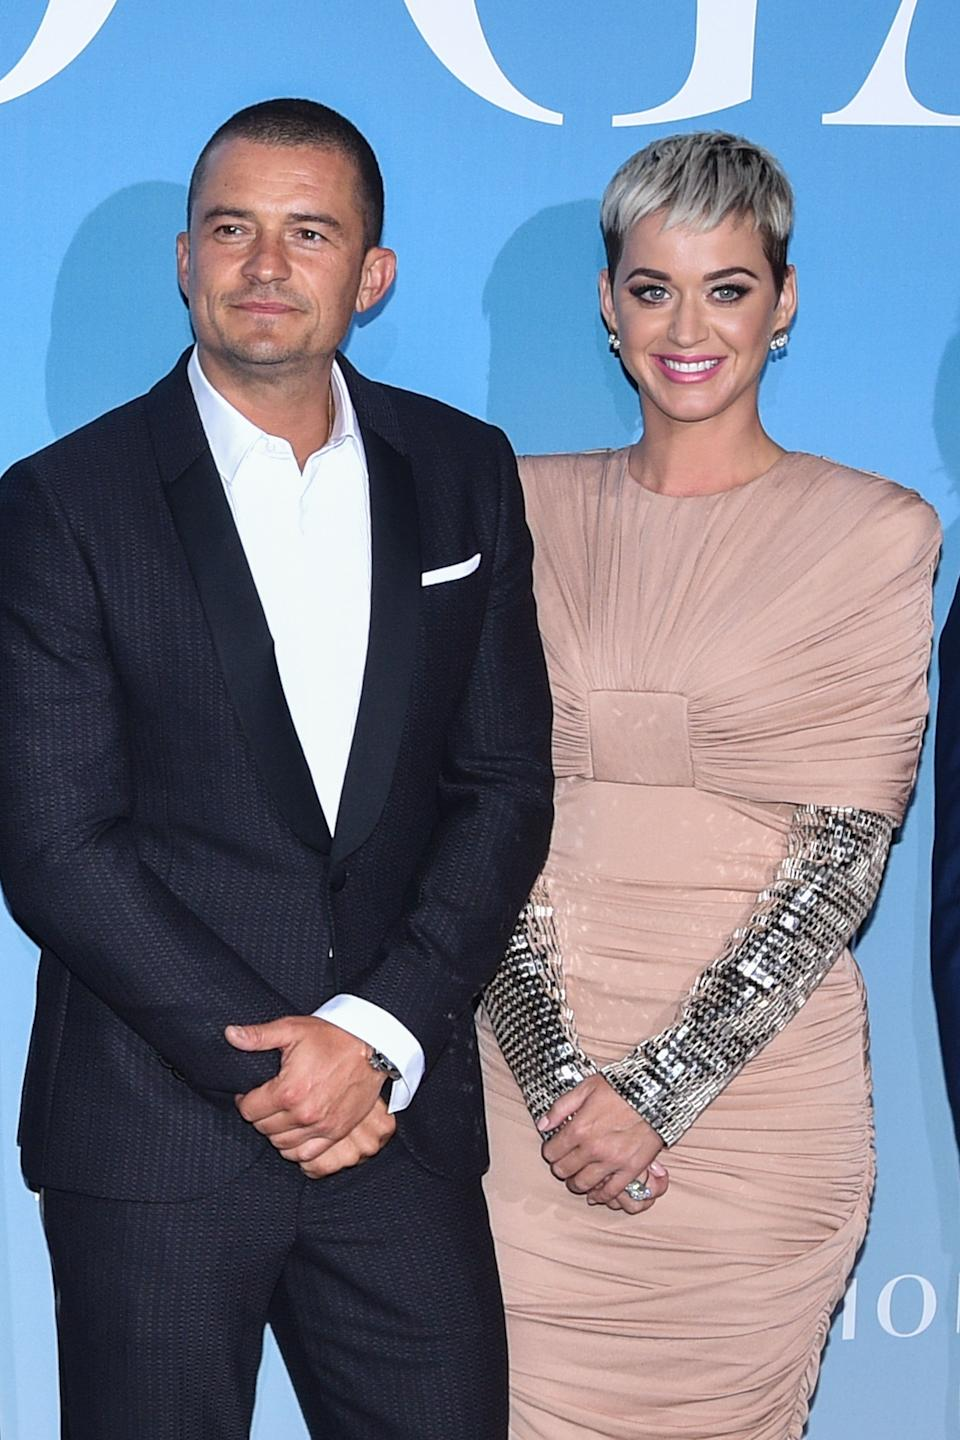 Orlando Bloom and Katy Perry (Photo: Stephane Cardinale - Corbis via Getty Images)